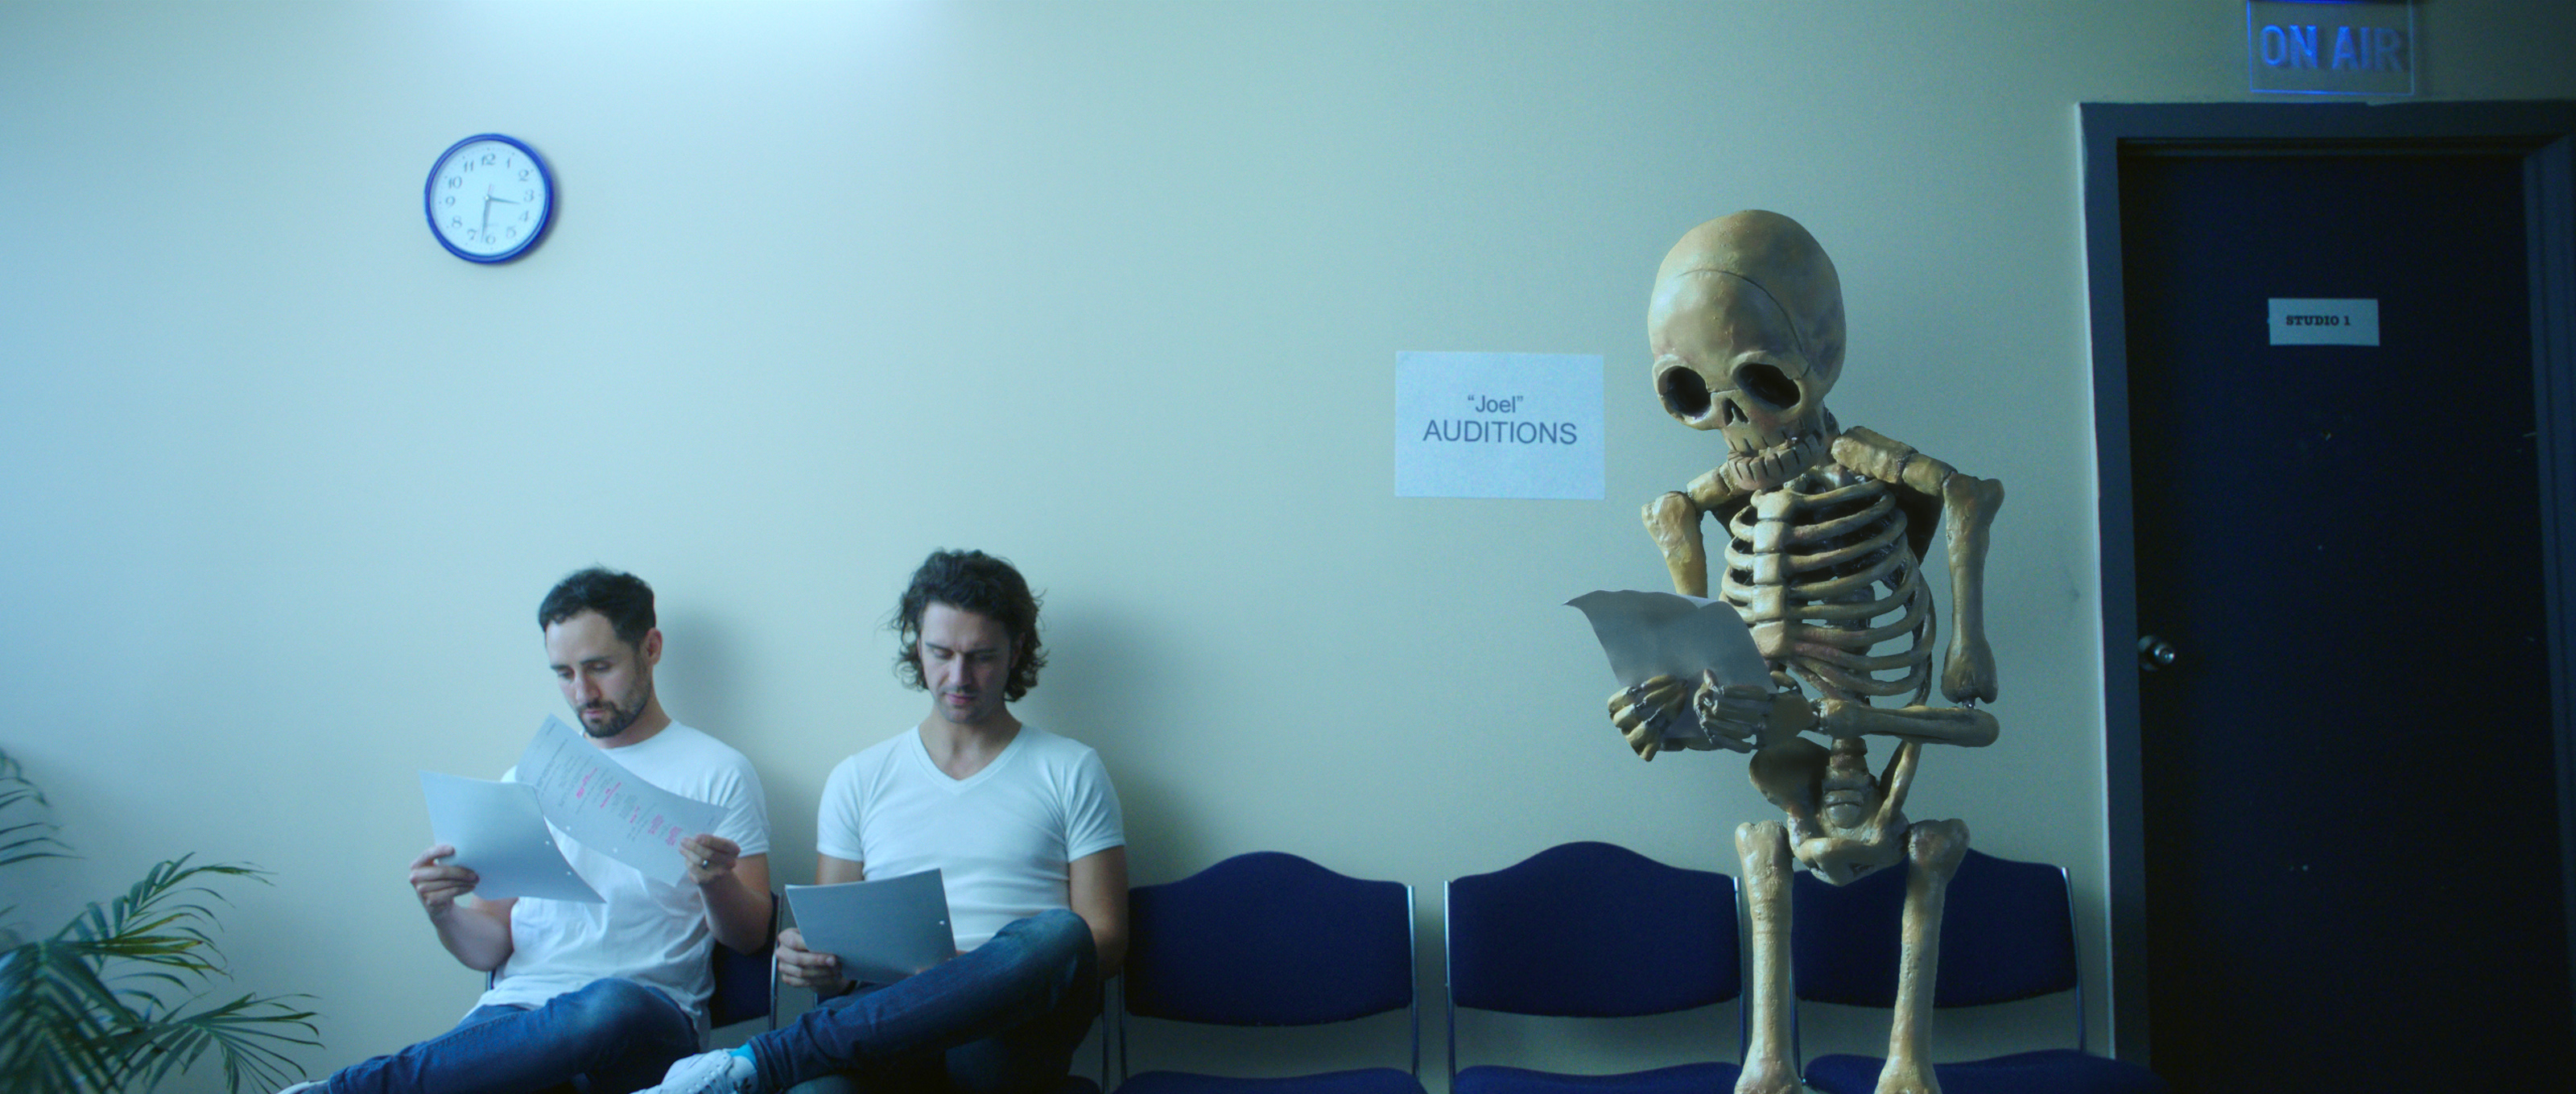 Stop motion skeleton at a film audition